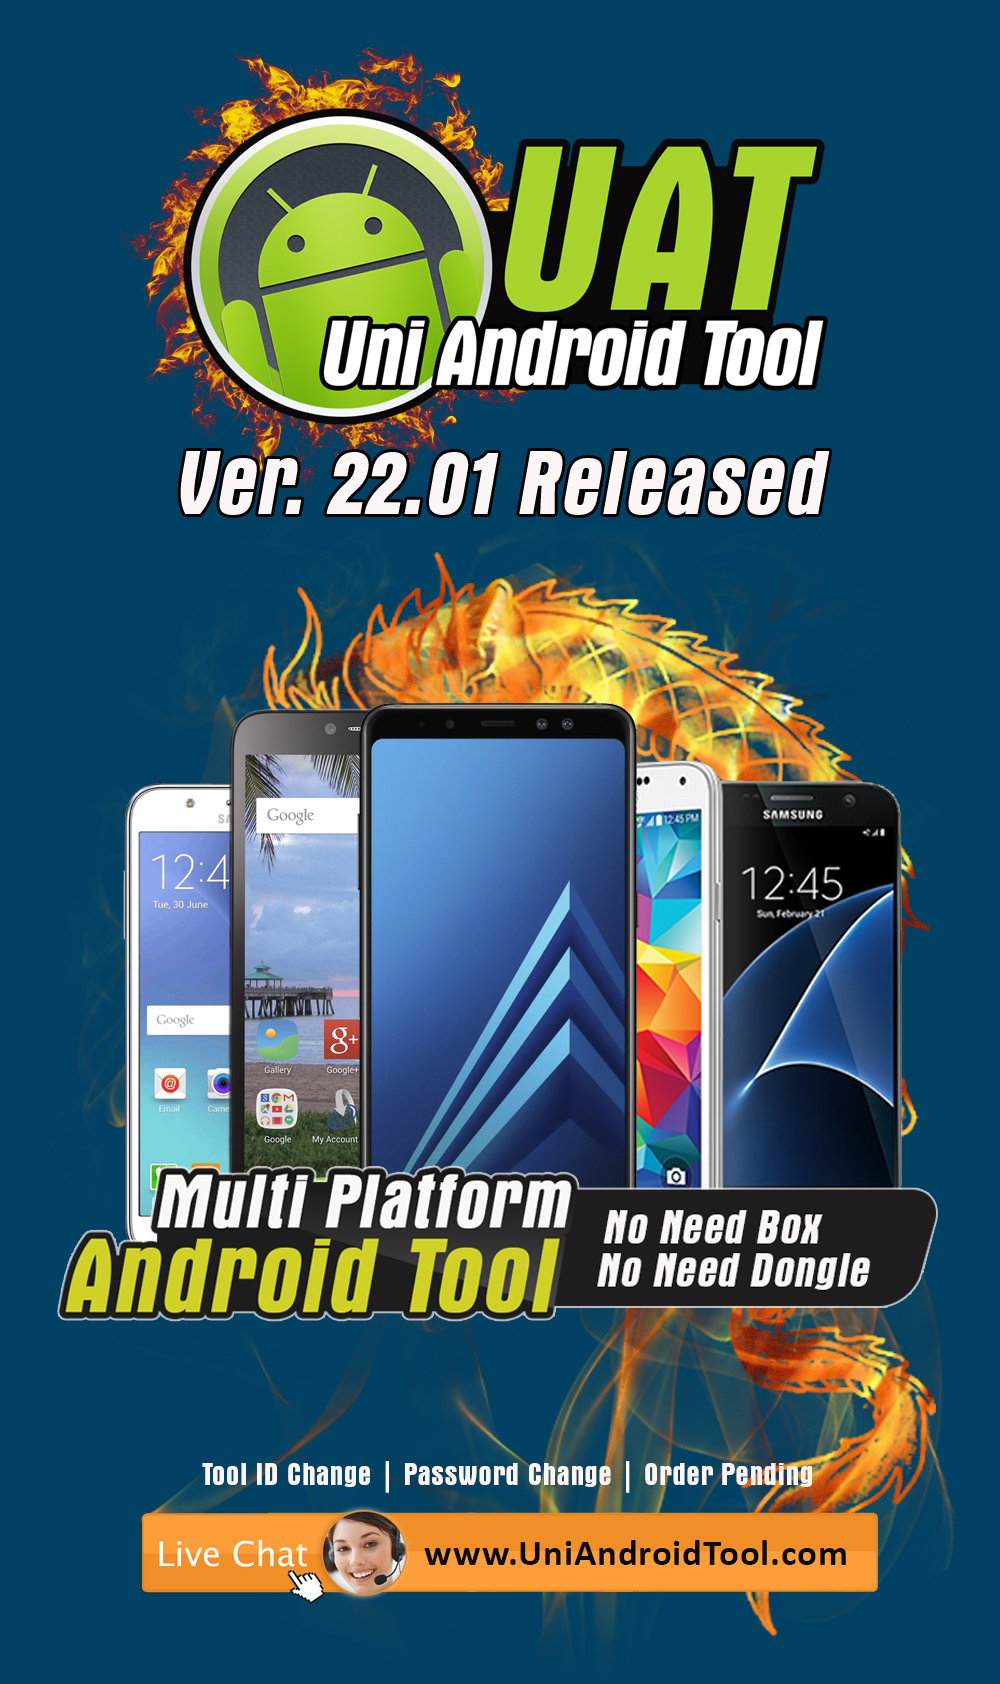 Uni-Android Tool [UAT] Version 22.01 Released - 17th April 2019